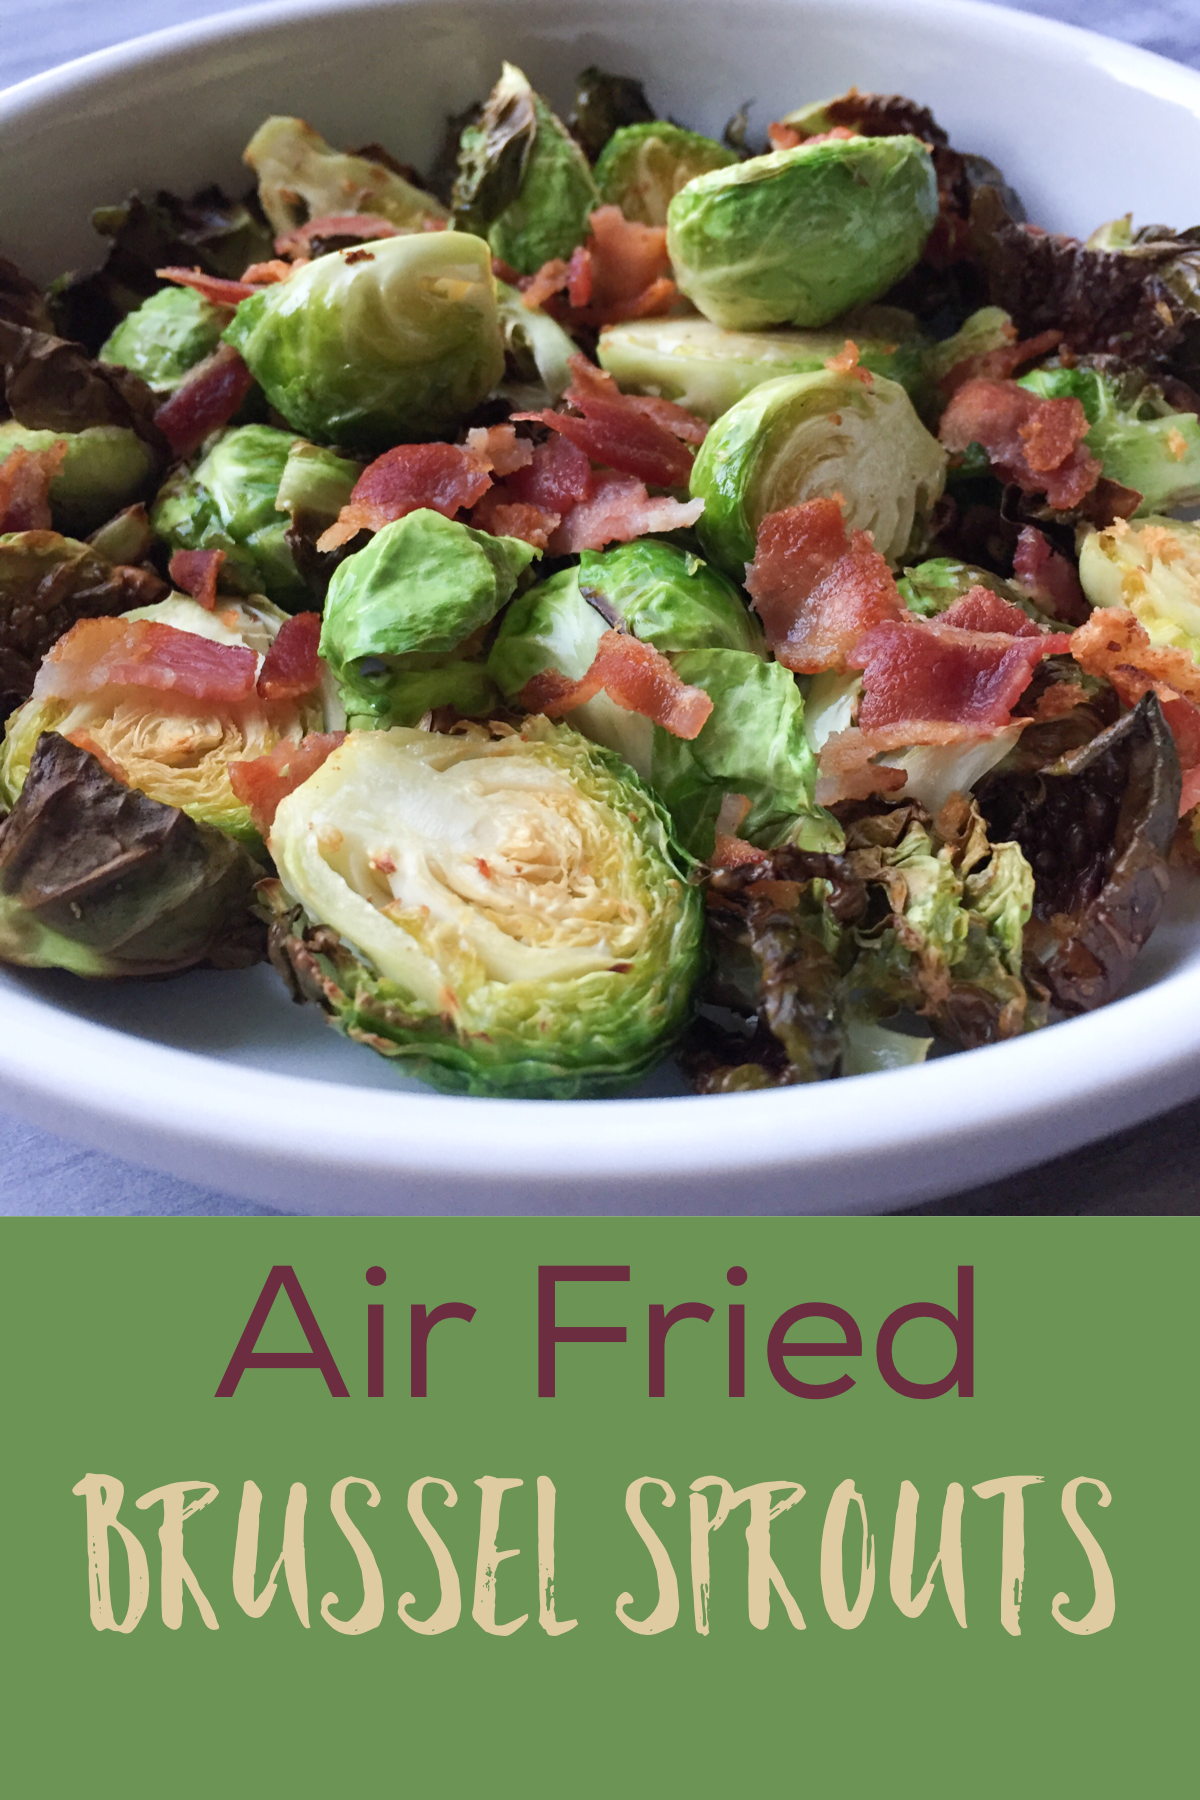 Brussel Sprout Recipes With Bacon Balsamic Vinegar Air Fryer